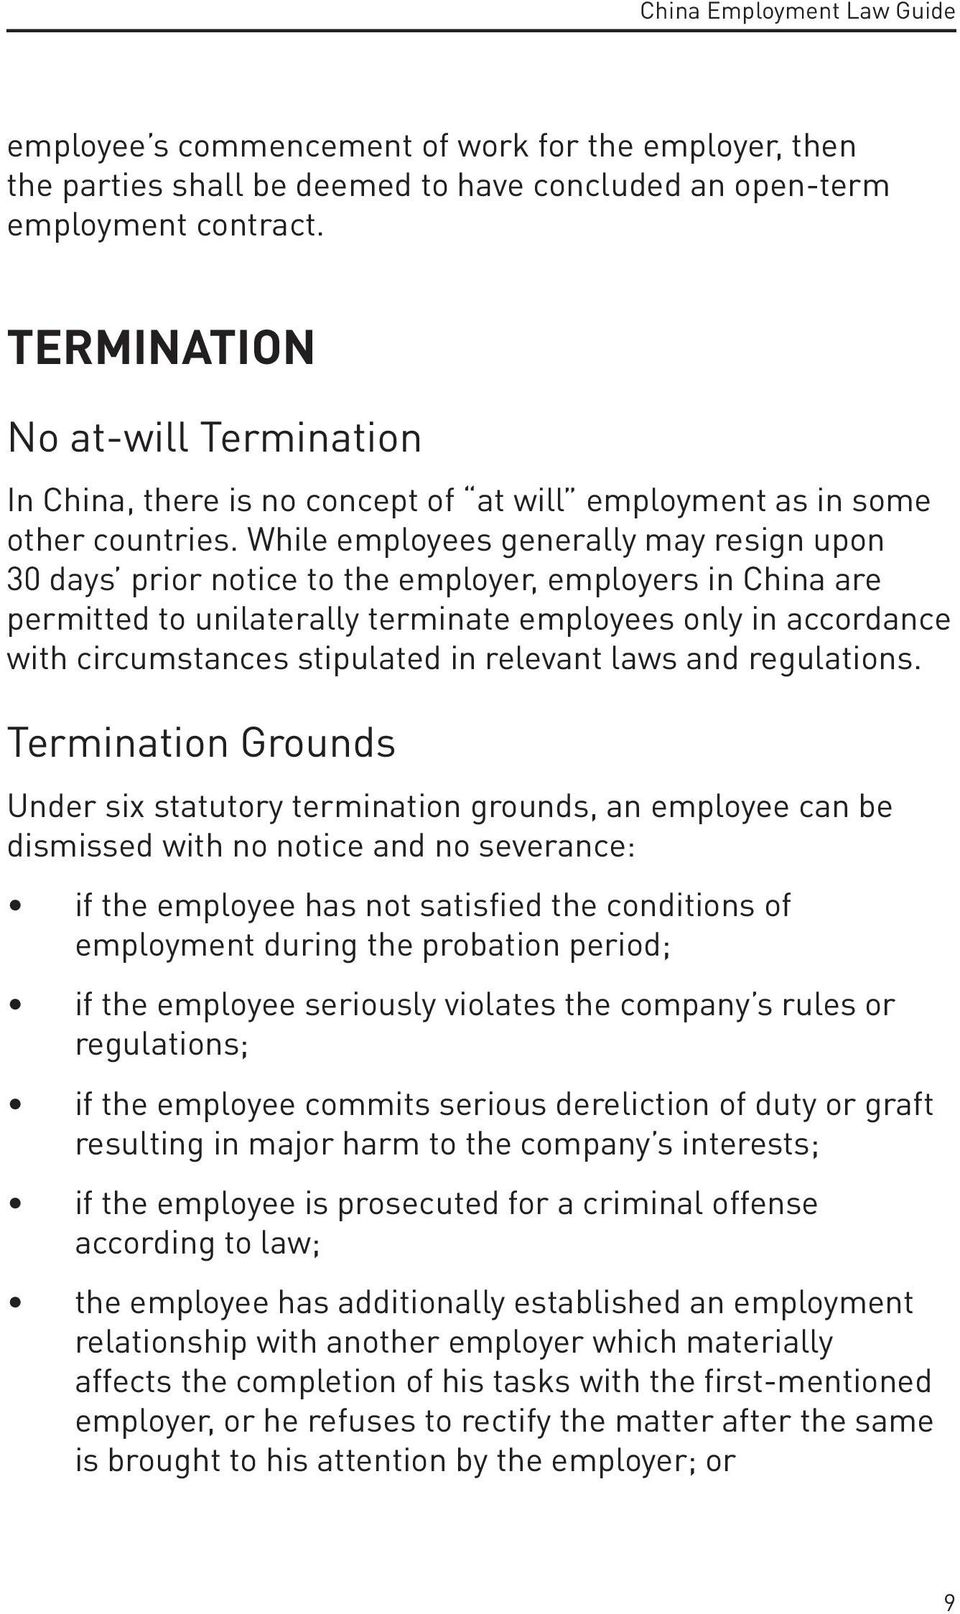 While employees generally may resign upon 30 days prior notice to the employer, employers in China are permitted to unilaterally terminate employees only in accordance with circumstances stipulated